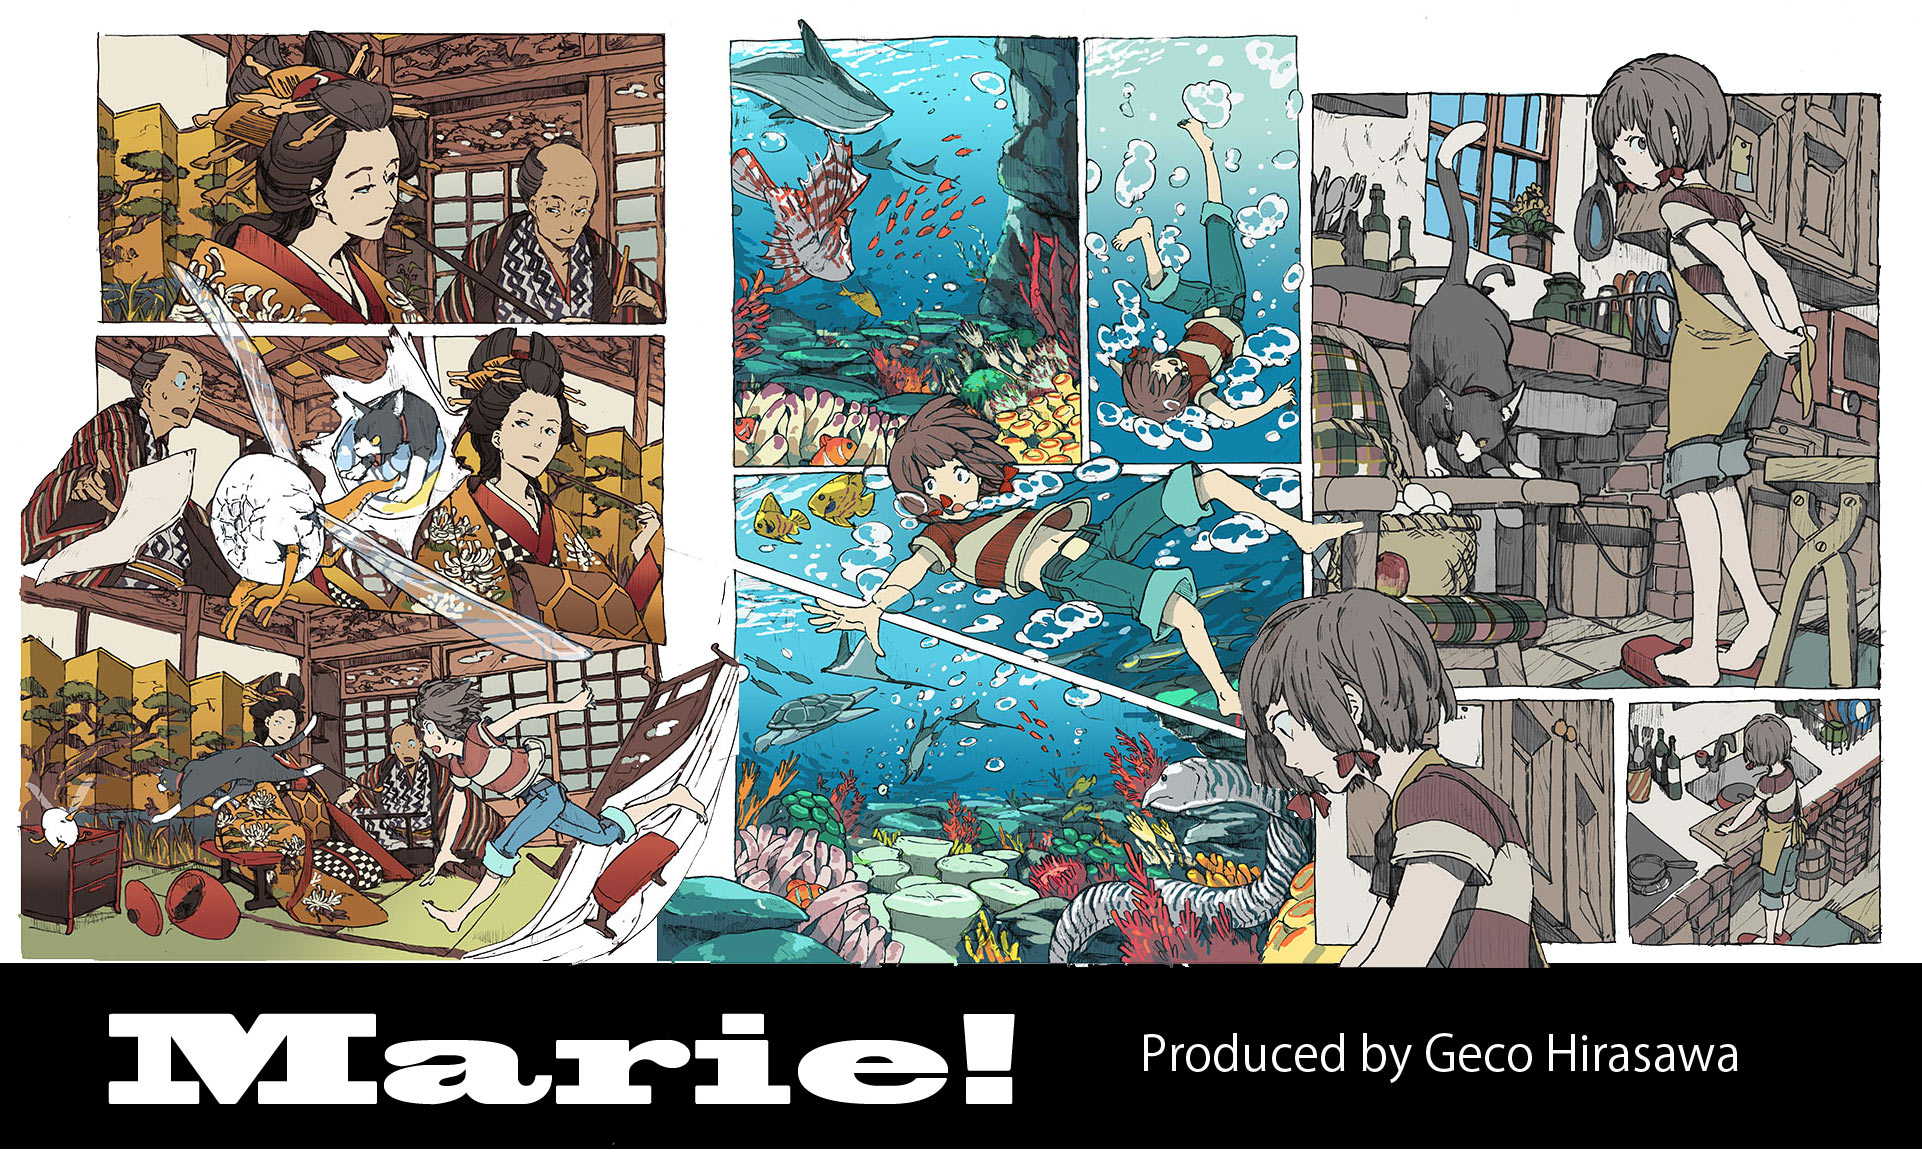 There's something about Marie by hira-geco